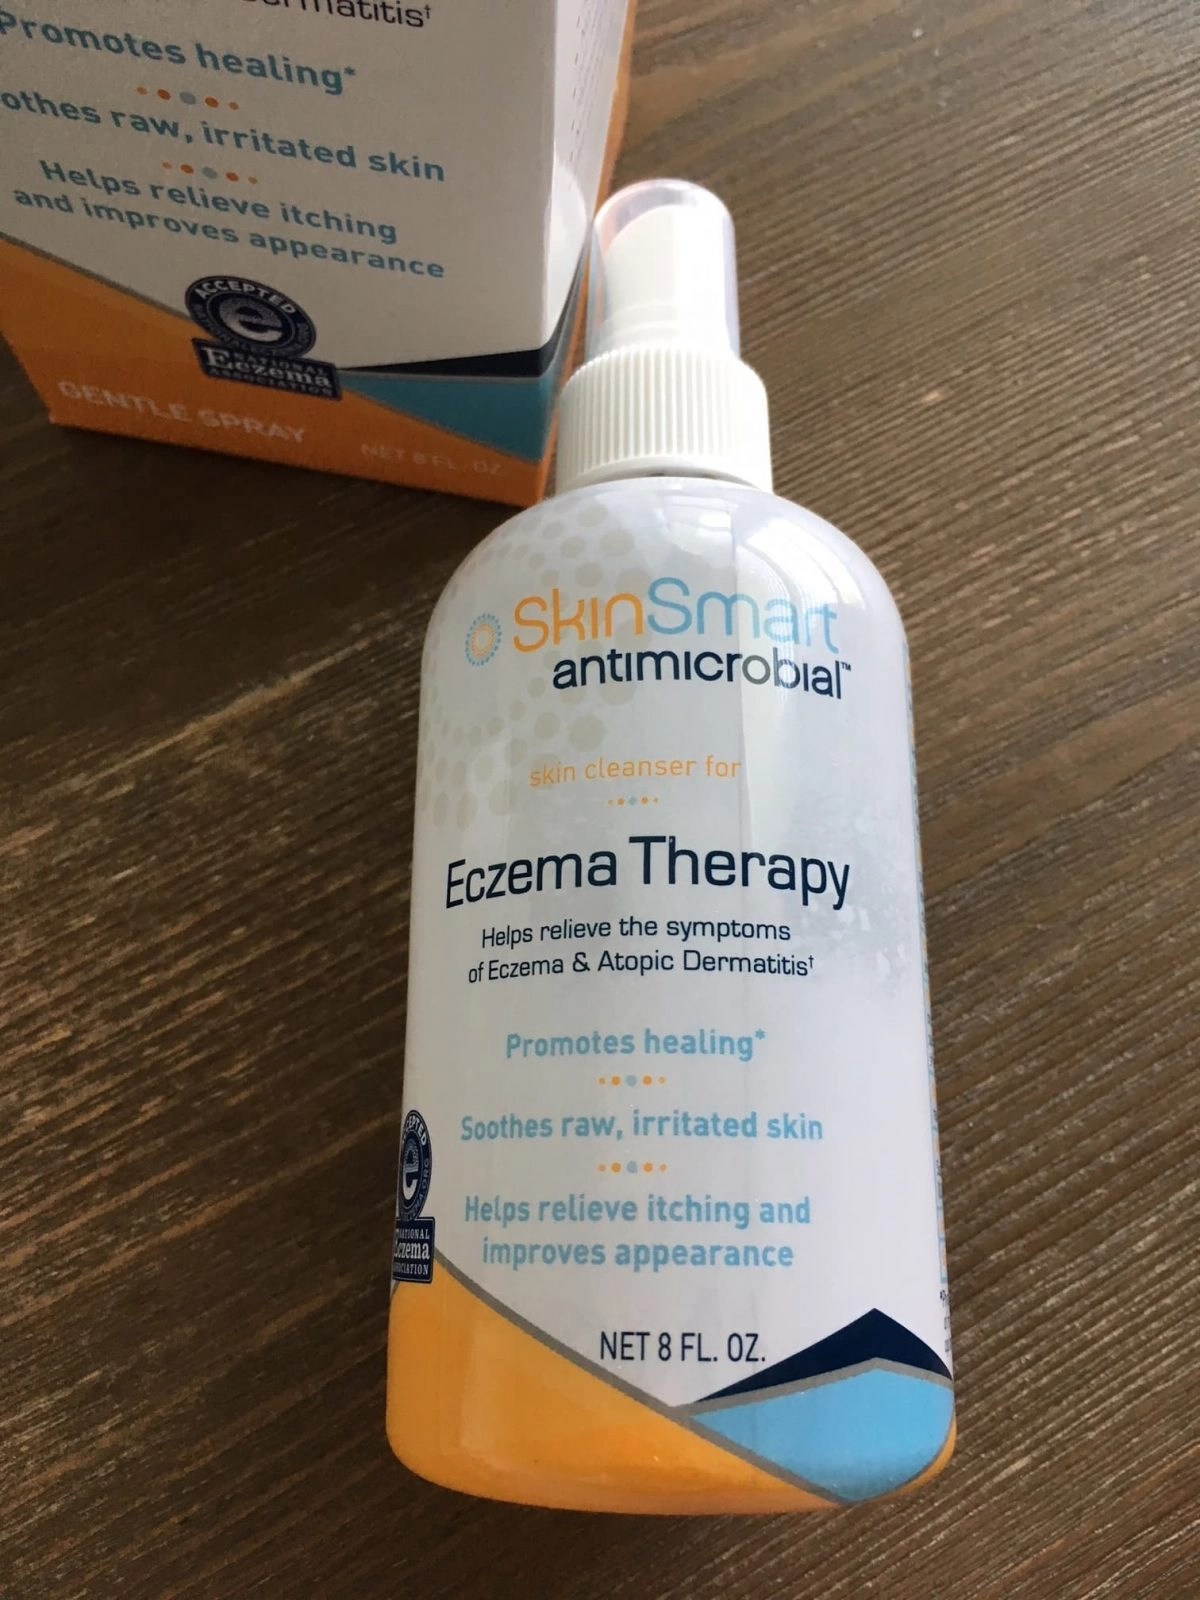 SkinSmart Antimicrobial Skin Cleanser for Eczema Therapy